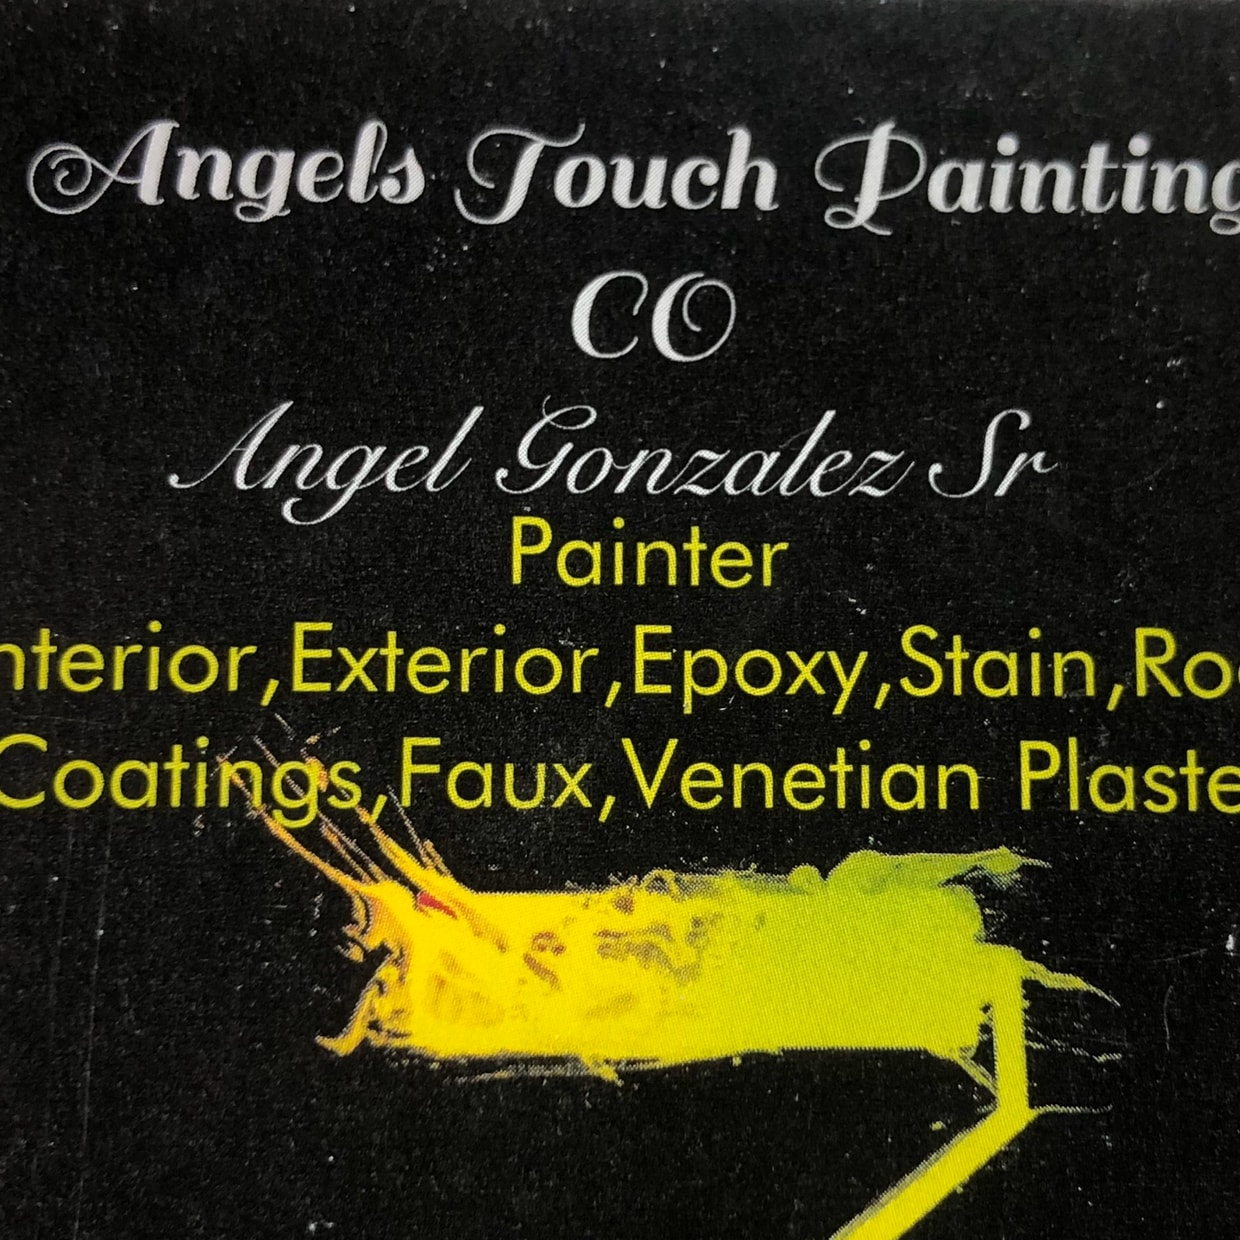 Angels Touch Painting Company